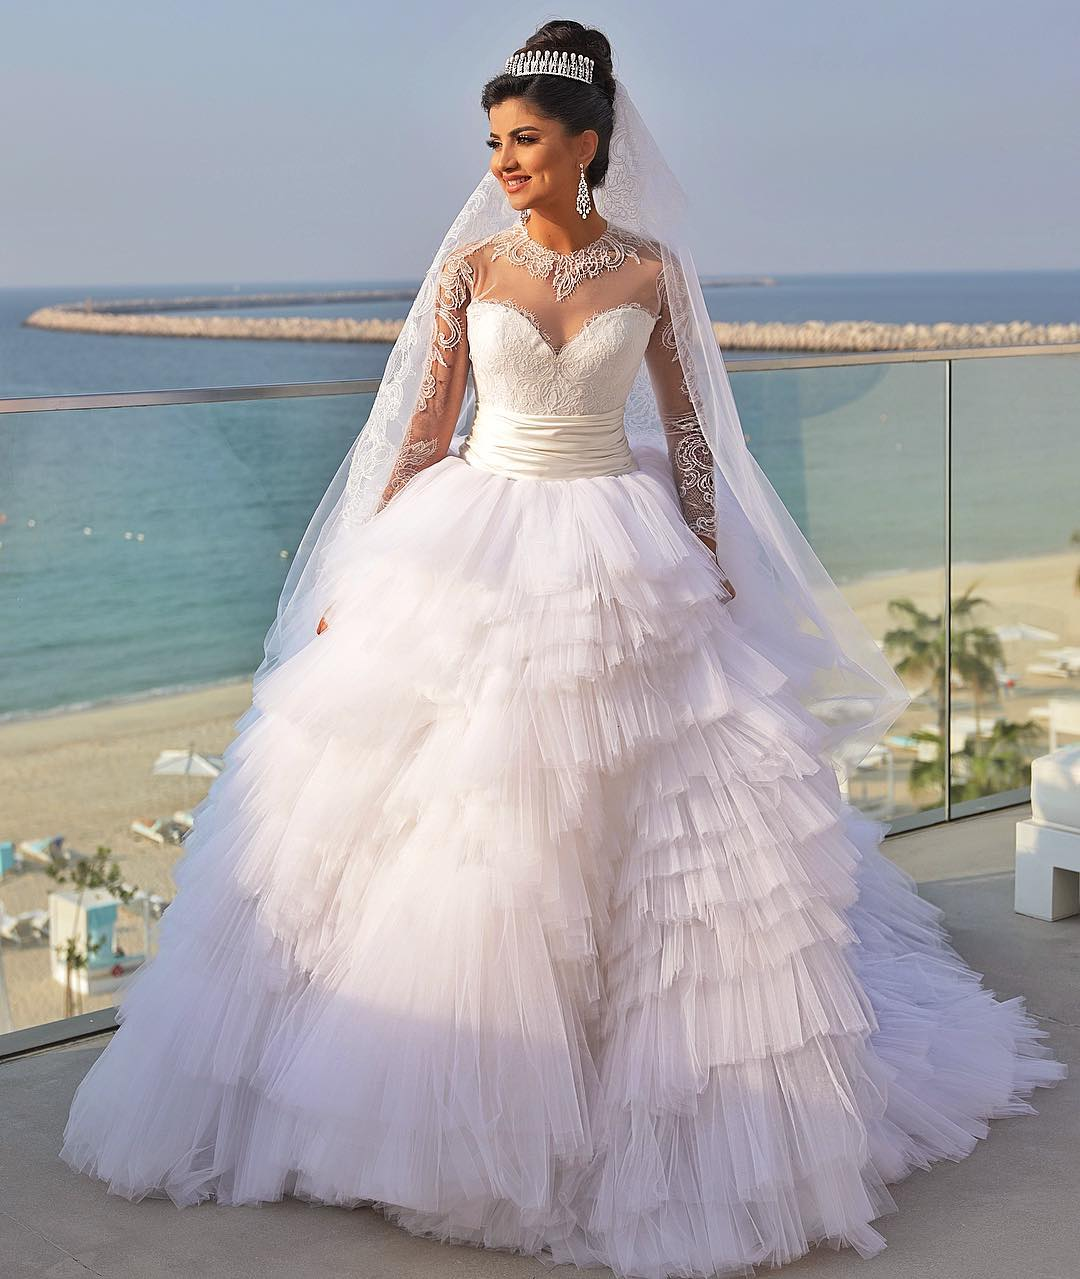 ola farahat wedding dress